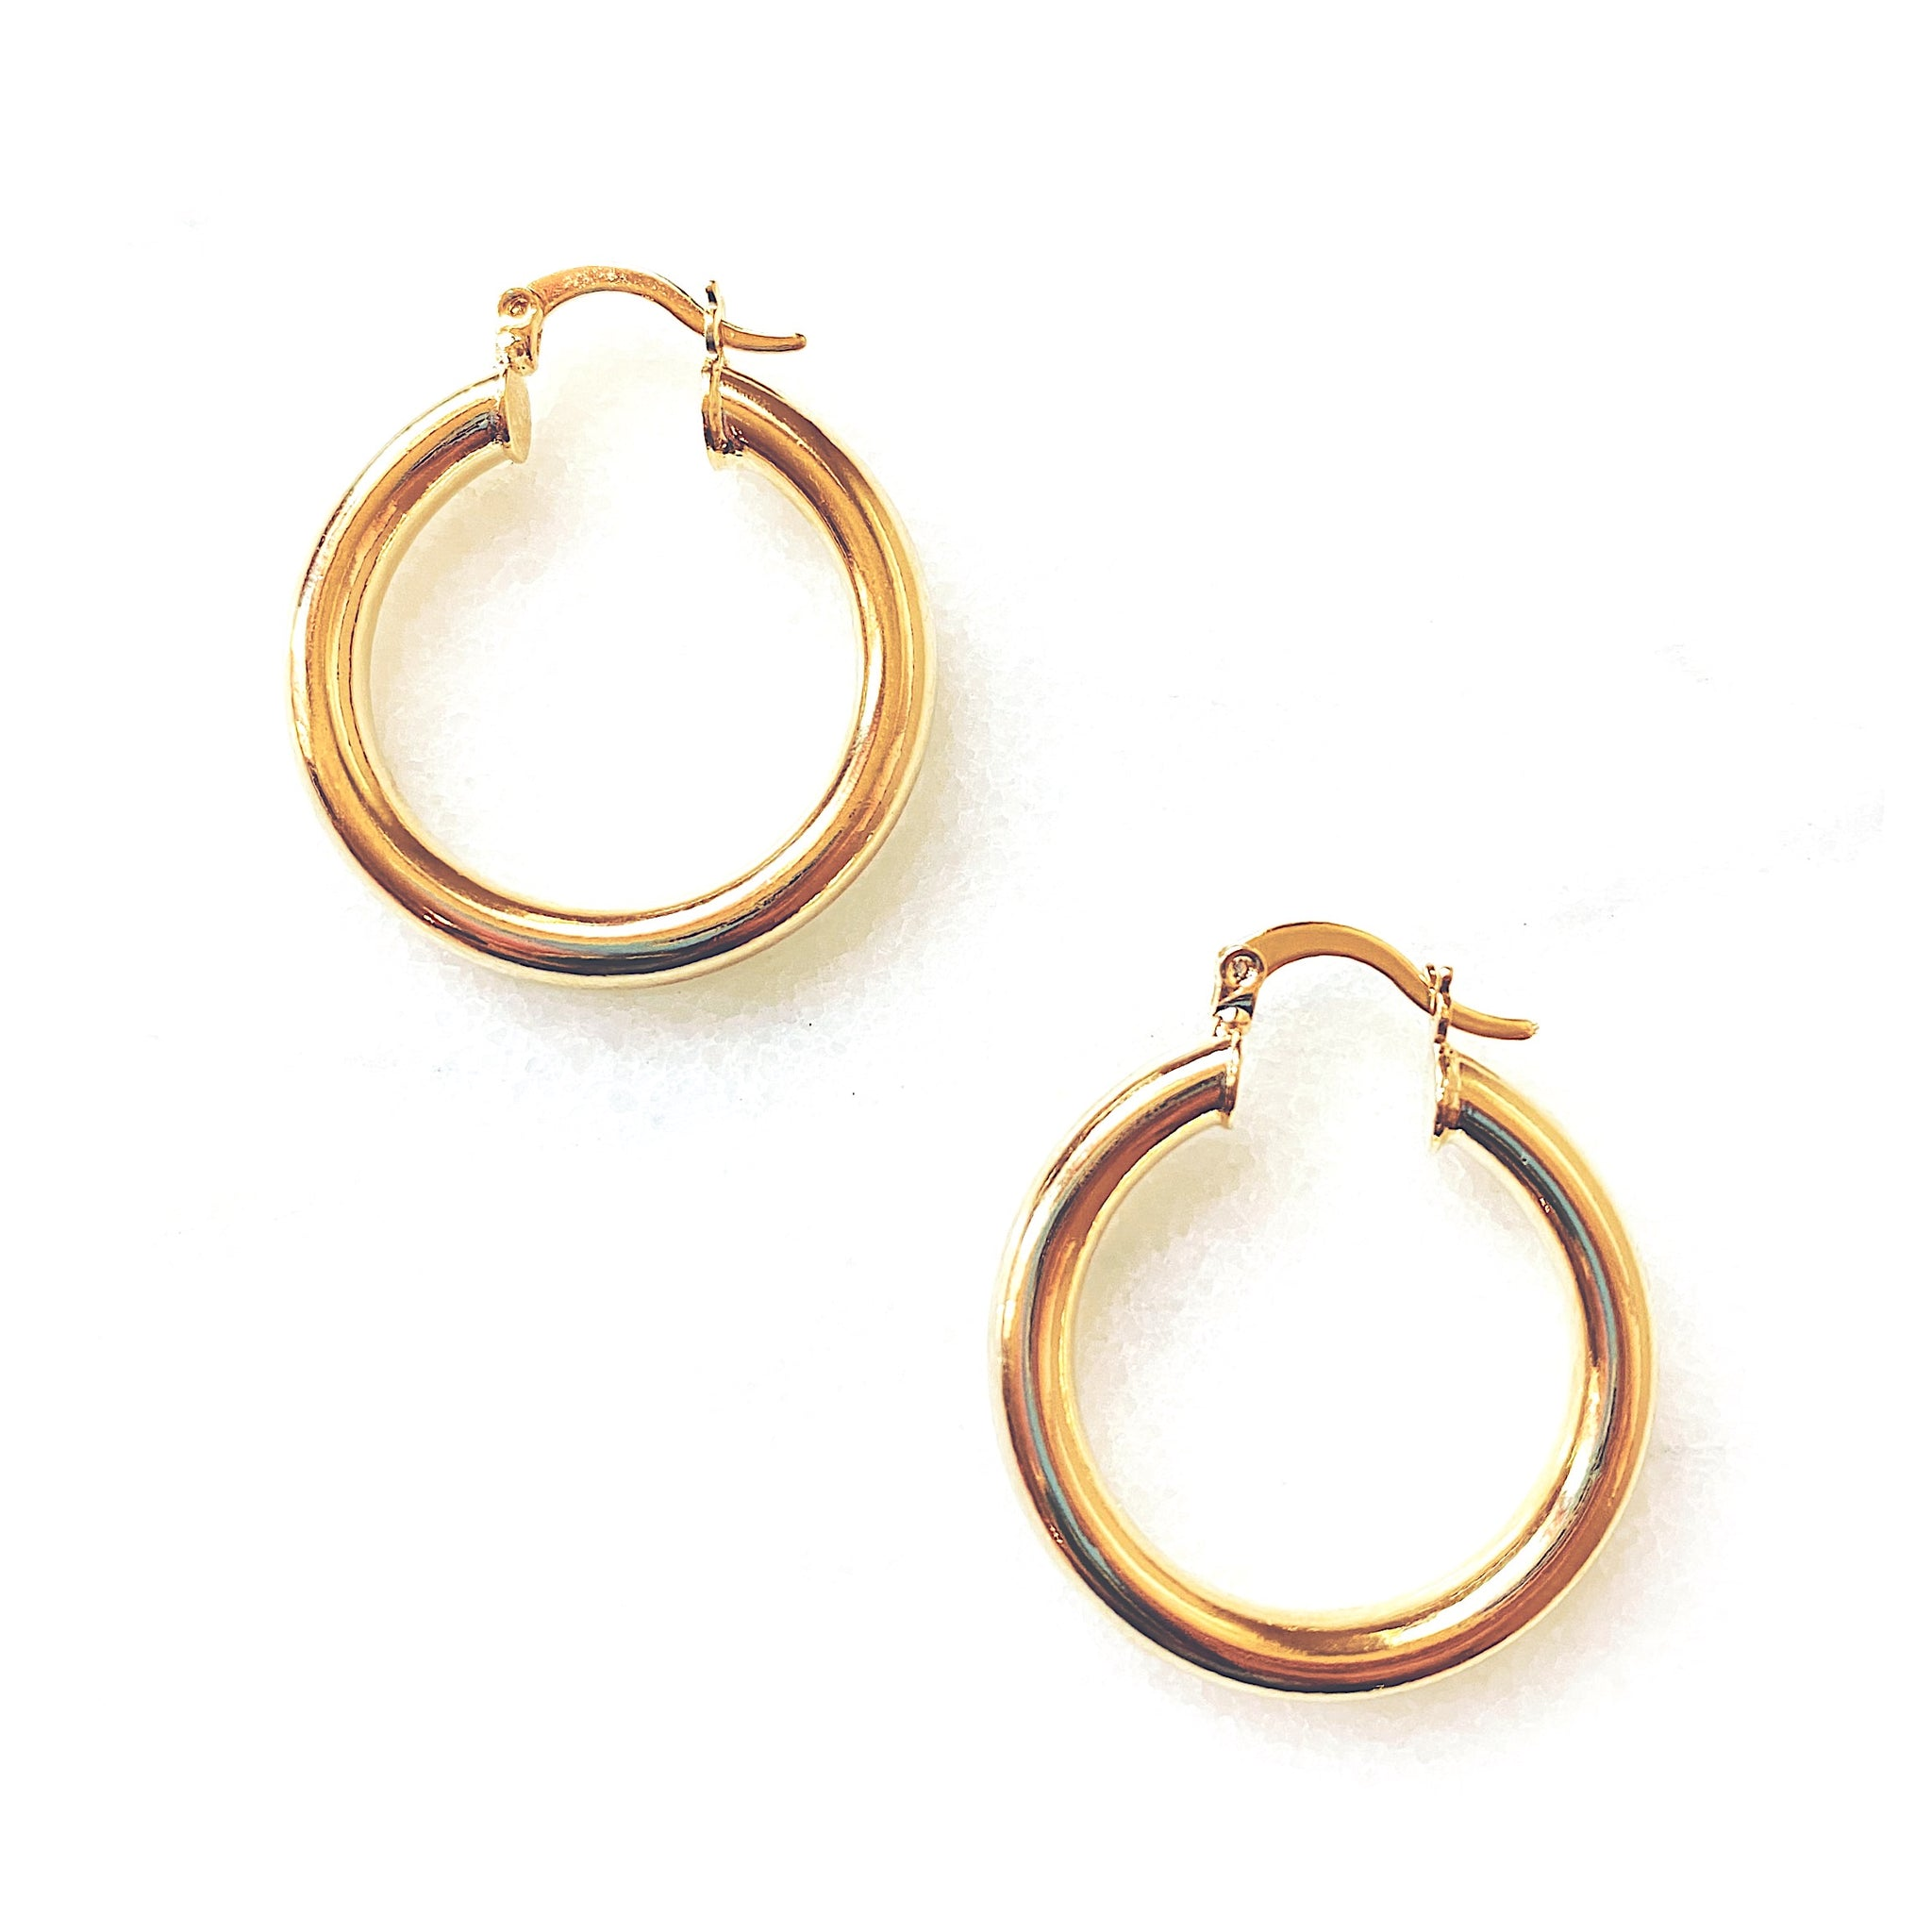 Jenny Gold Filled Hoop Earrings